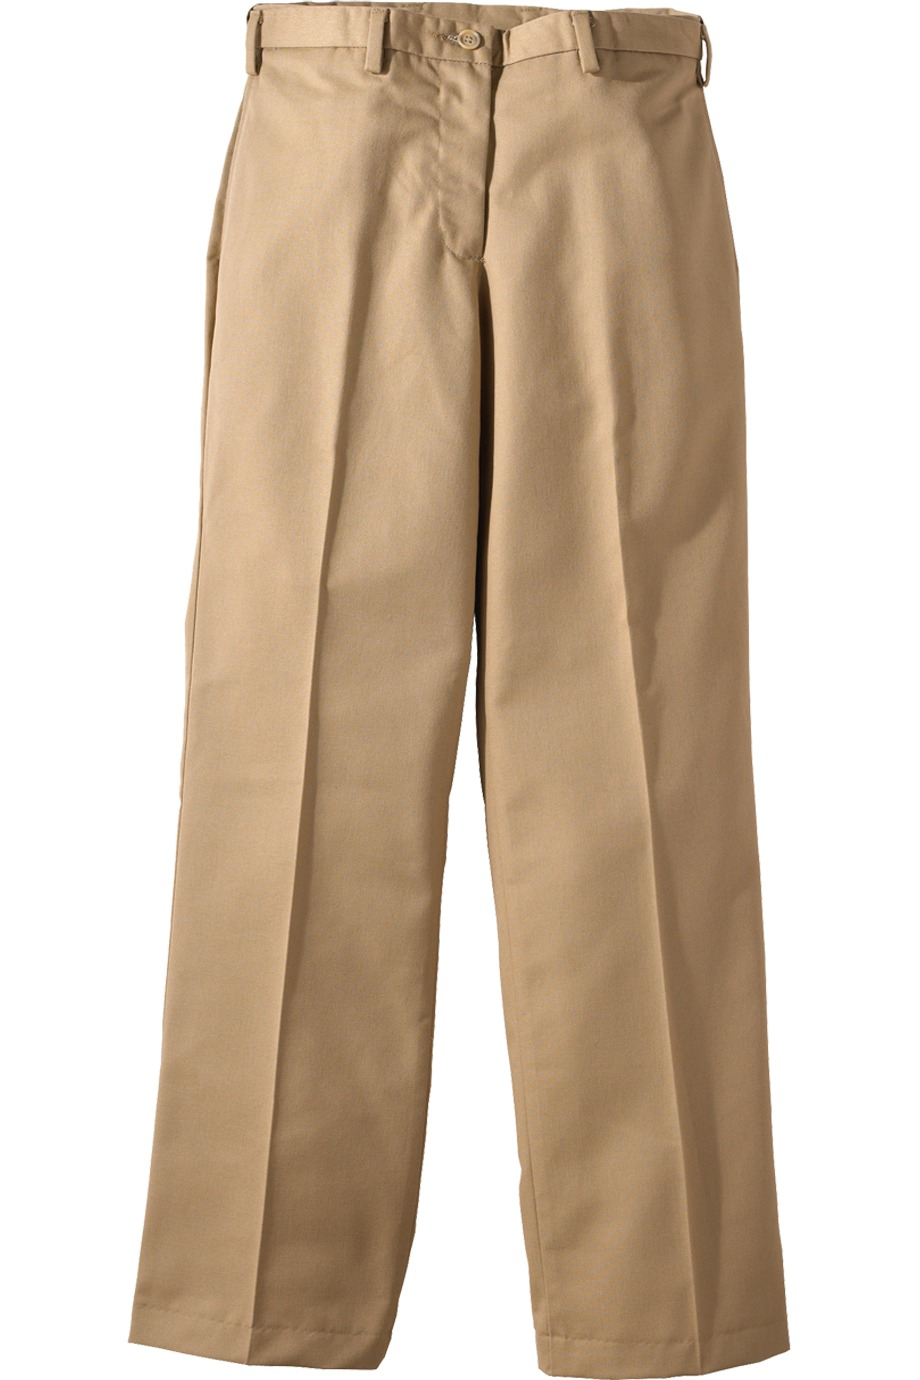 Edwards Garment 8576 - Women's Easy Fit Chino Flat Front ...